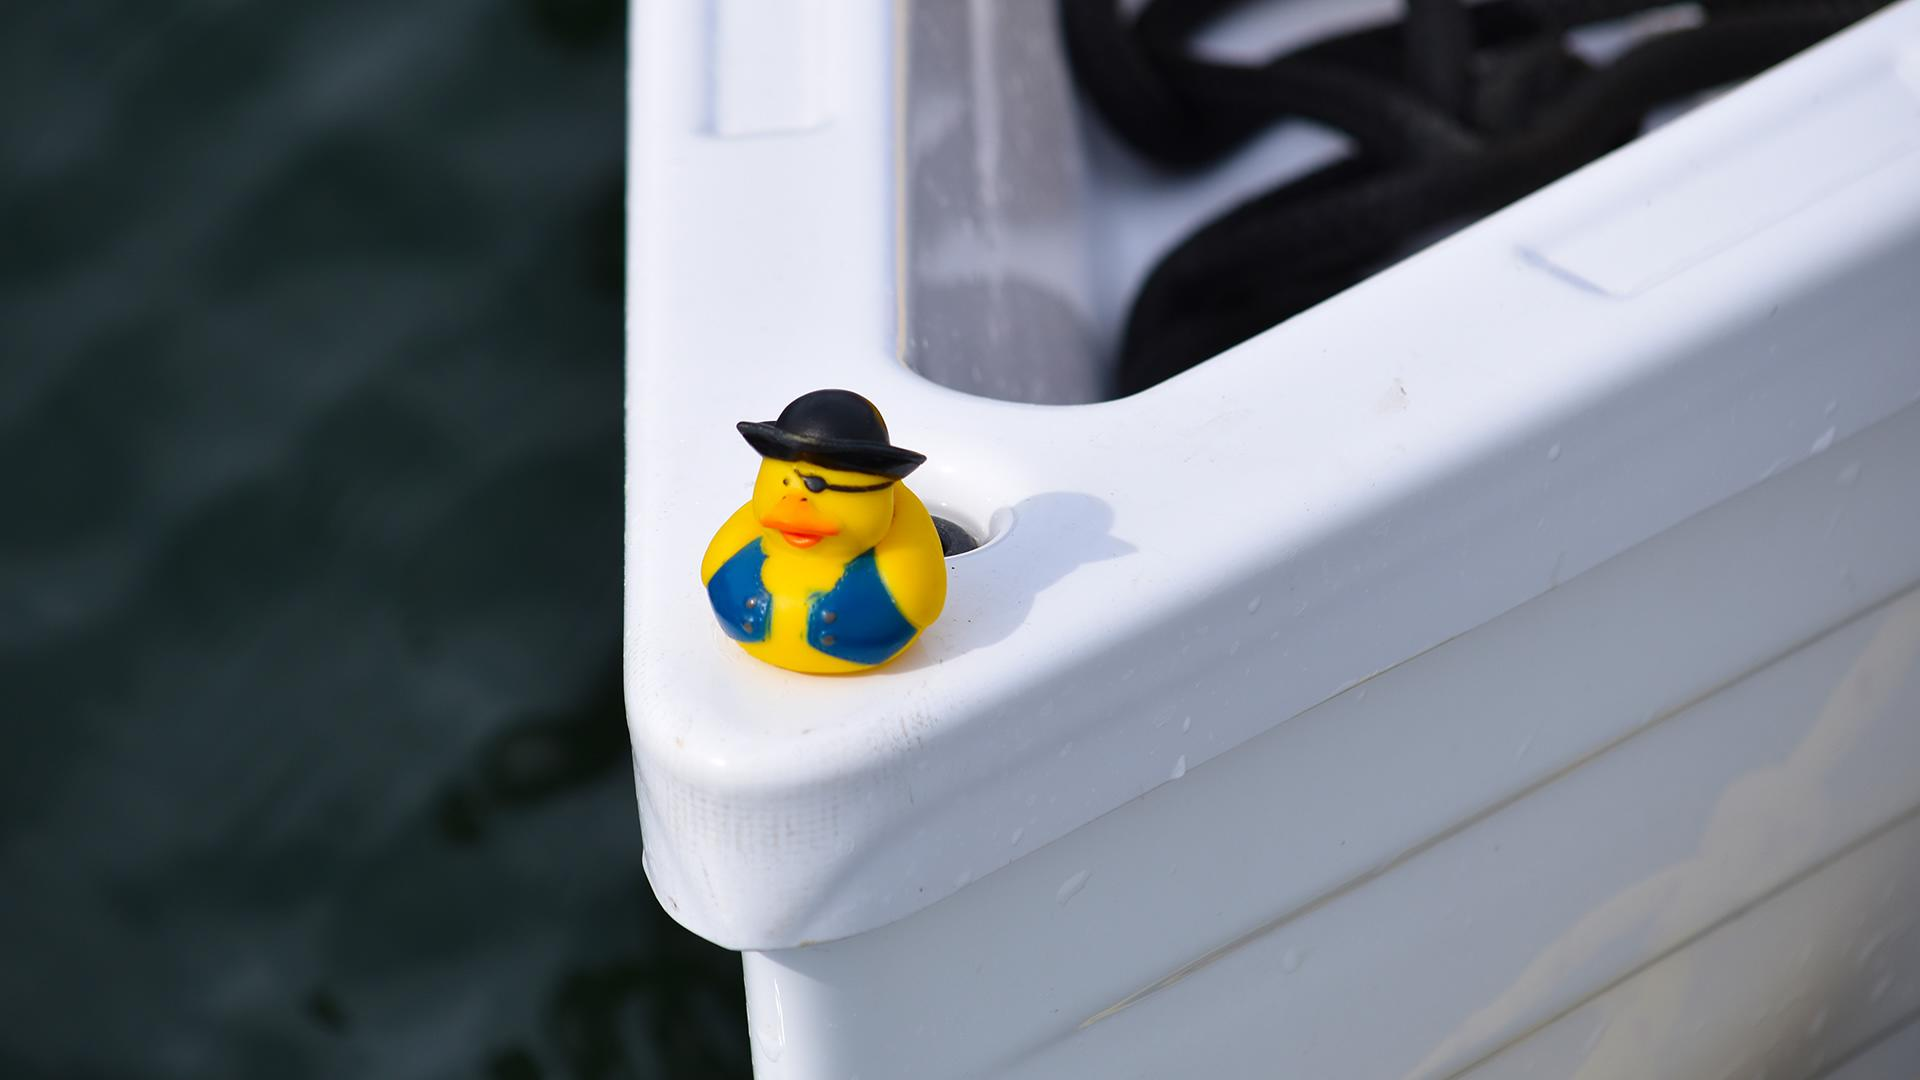 Rowboat-Whitehall-Rowing-Duck-Mascot-R2AK-Race-to-Alaska